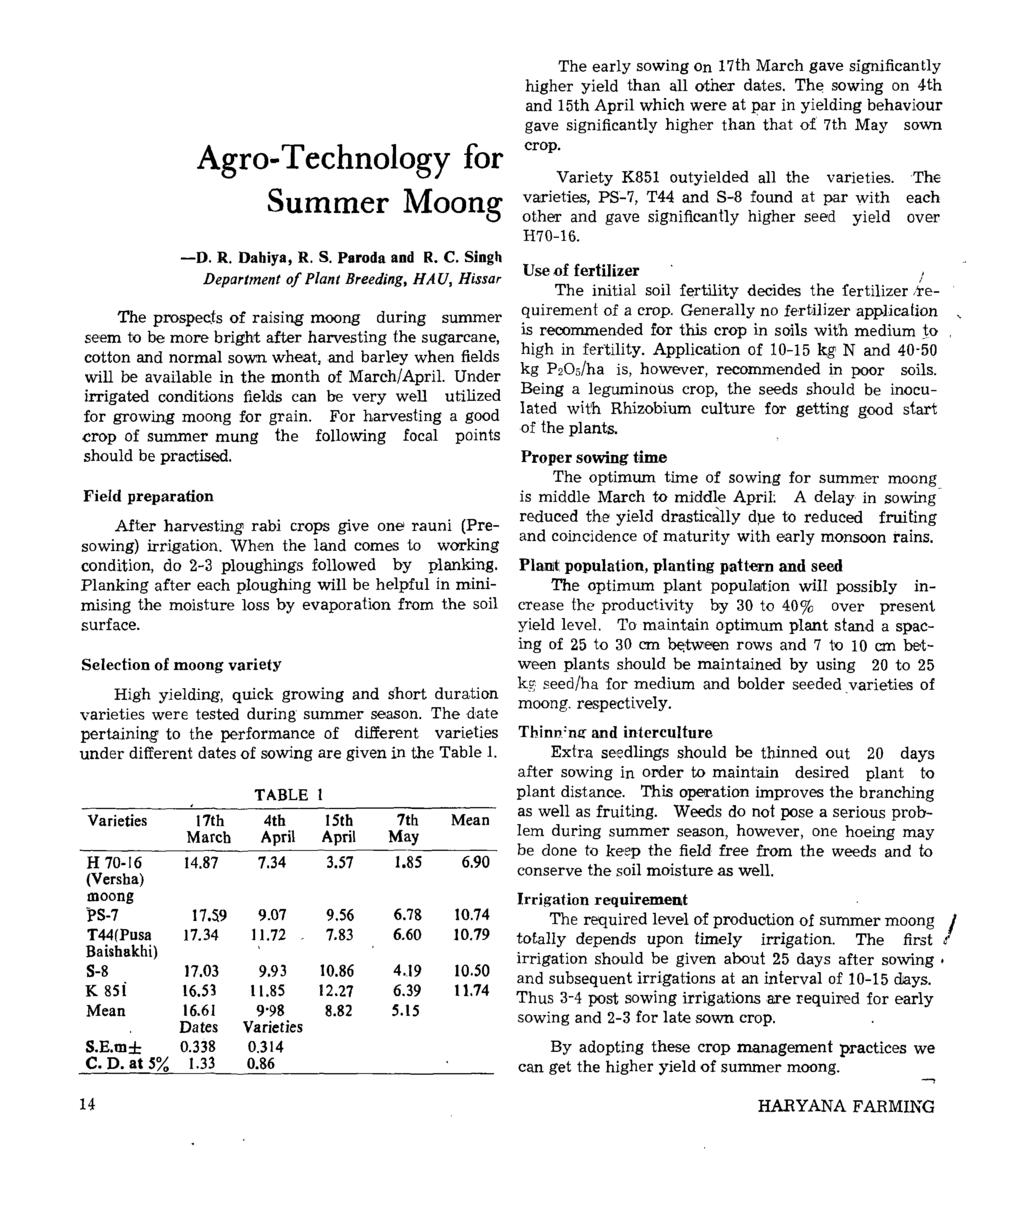 Agro-Technology for Summer Moong -D. R. Oabiya, R. S. Paroda and R. C.